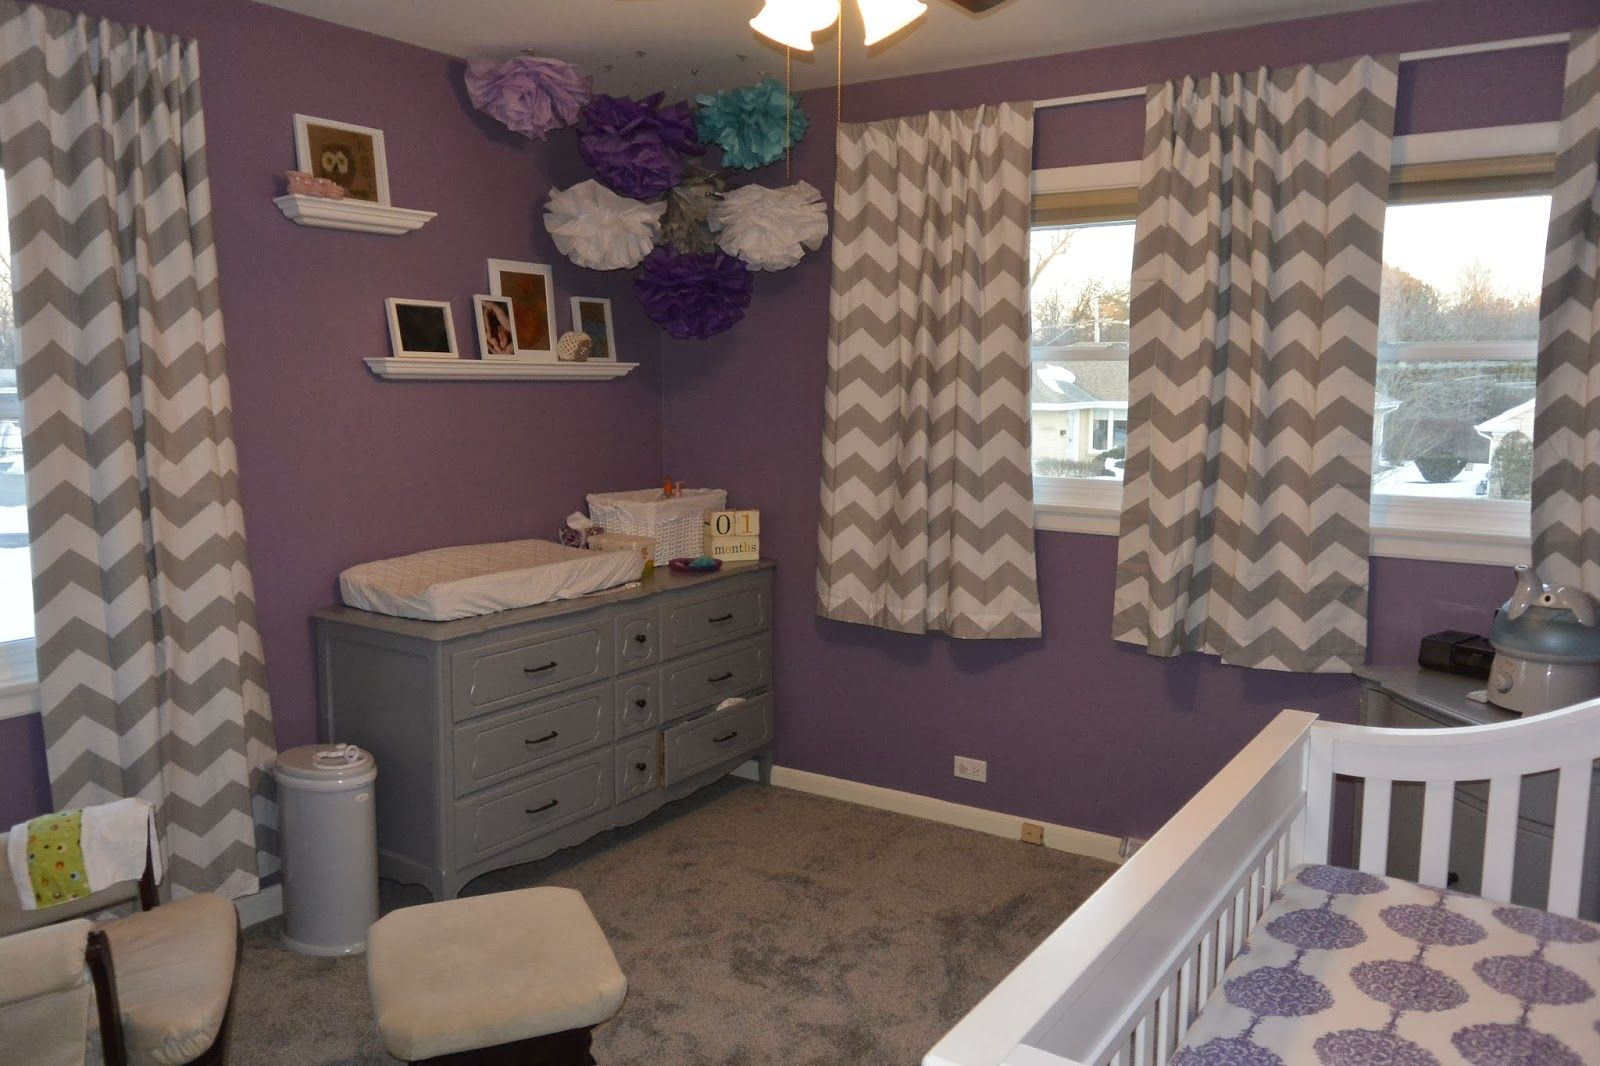 Gray And Teal Bedroom Ideas room tour: adleigh's nursery | teal nursery, purple gray and teal